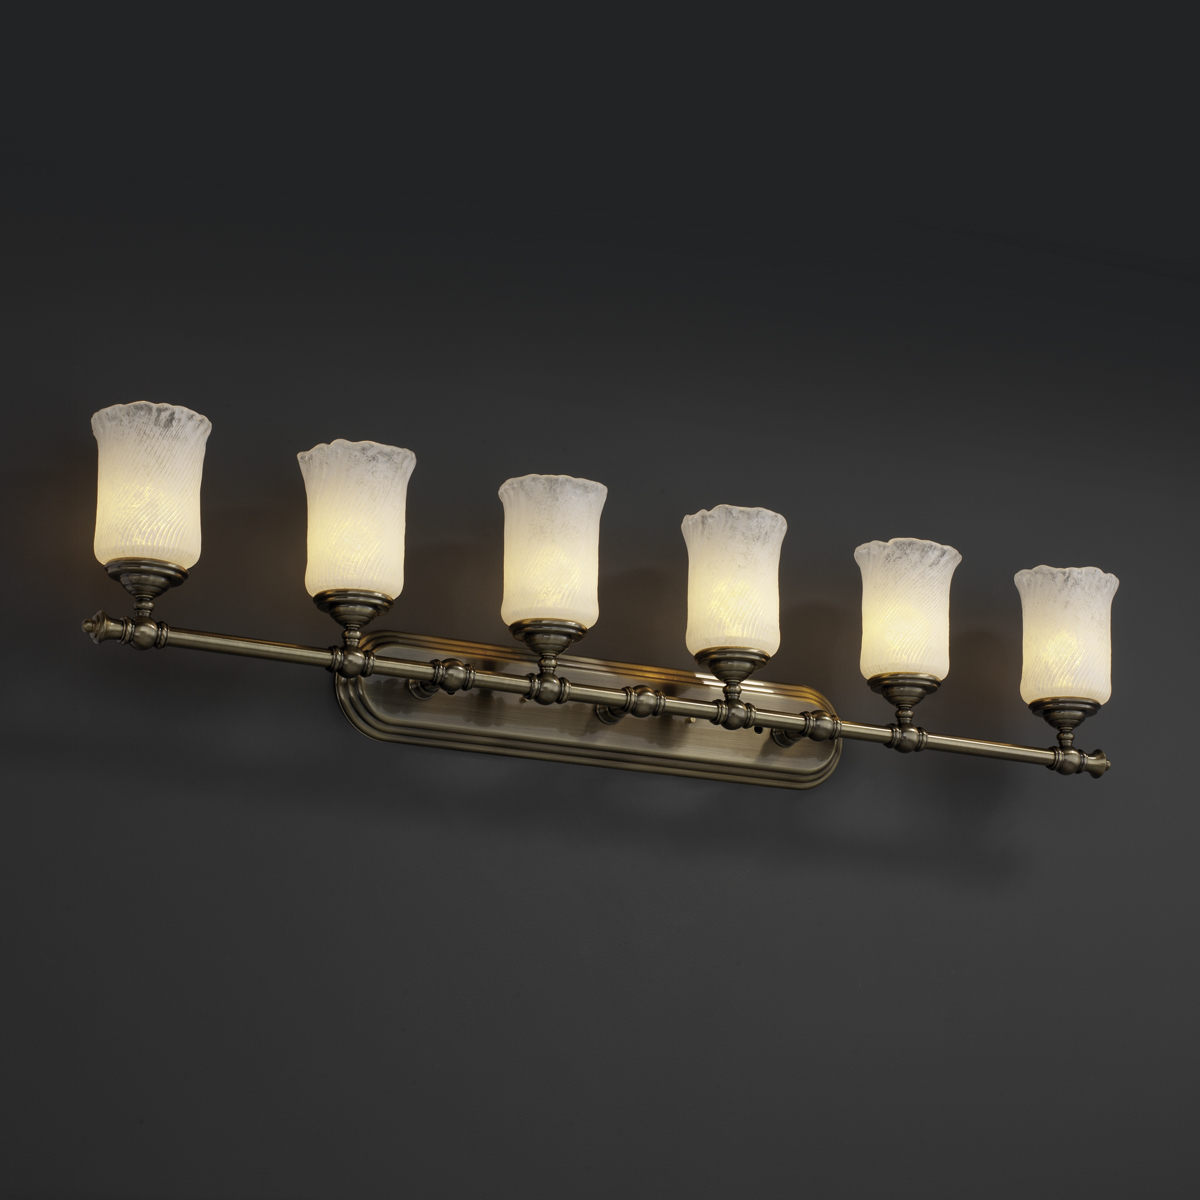 Vanity Light Bar Parts : Justice Design (GLA-8526) Tradition 6-Light Bath Bar from the Veneto Luce Collection